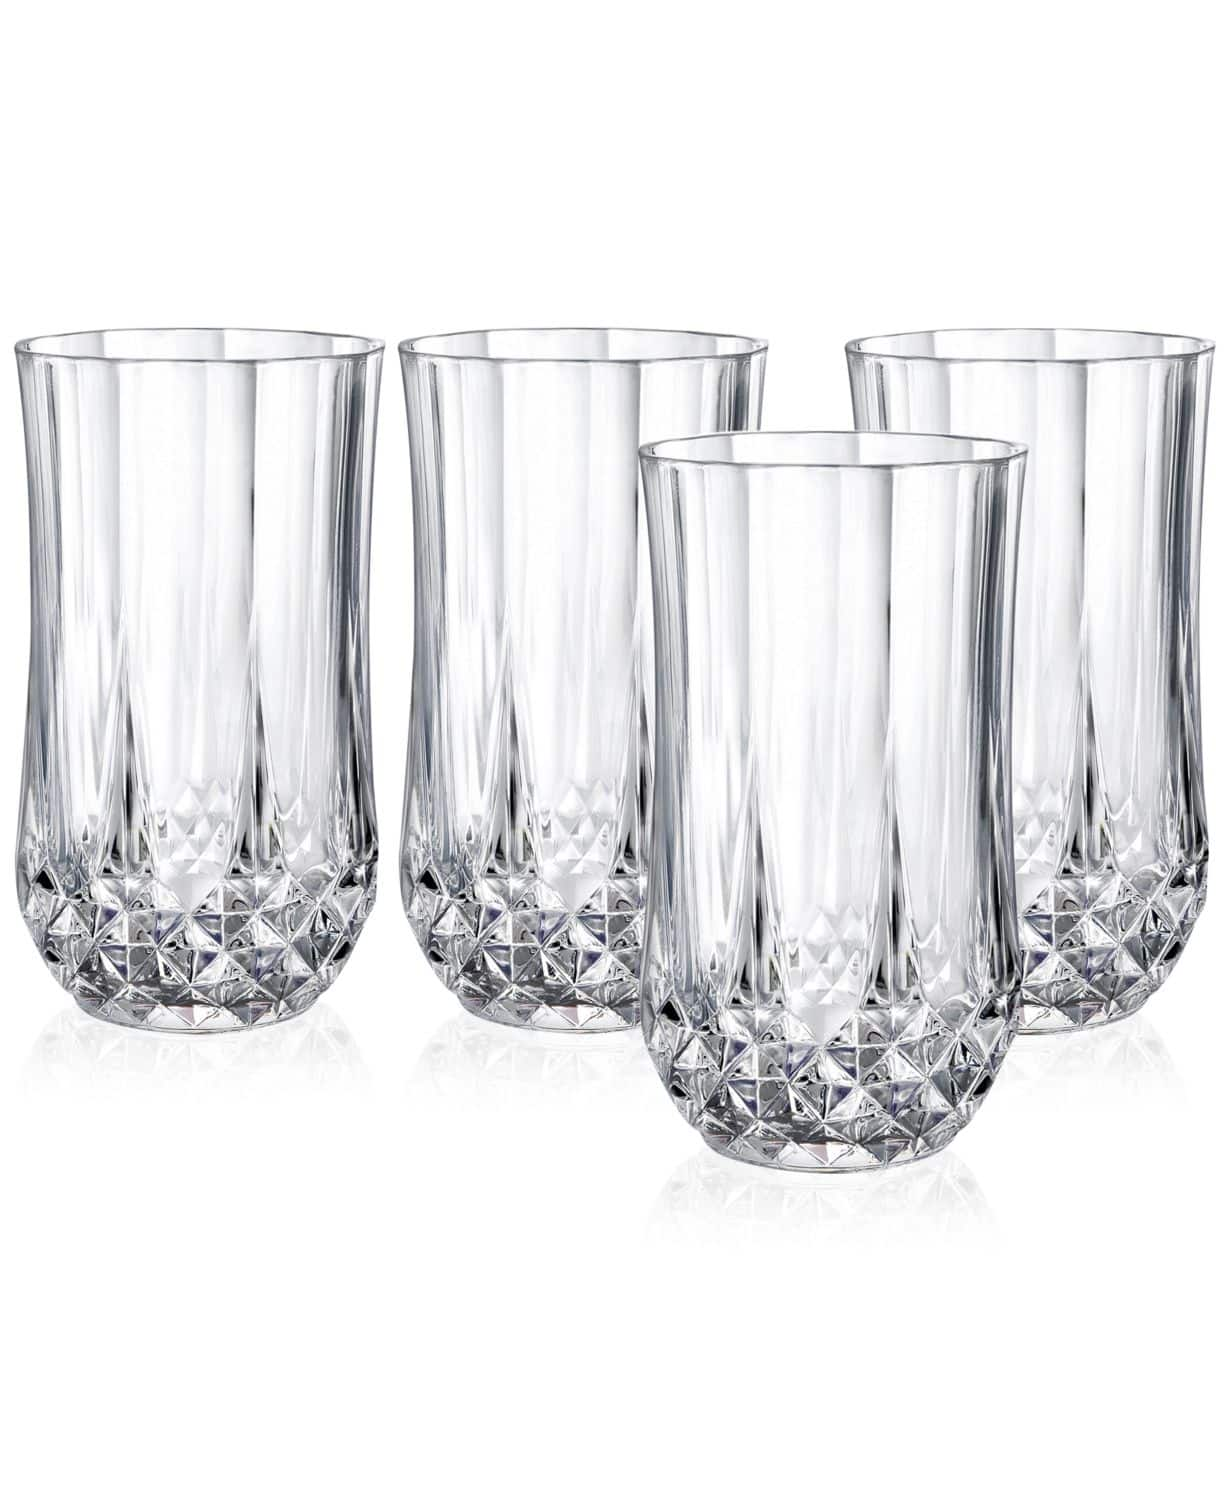 Macys:Cristal D'Arques Lead free crystal - 4Pc Drinkware Sets or Pitcher $9.99. Highball, Goblets, Old Fashion & Wine.